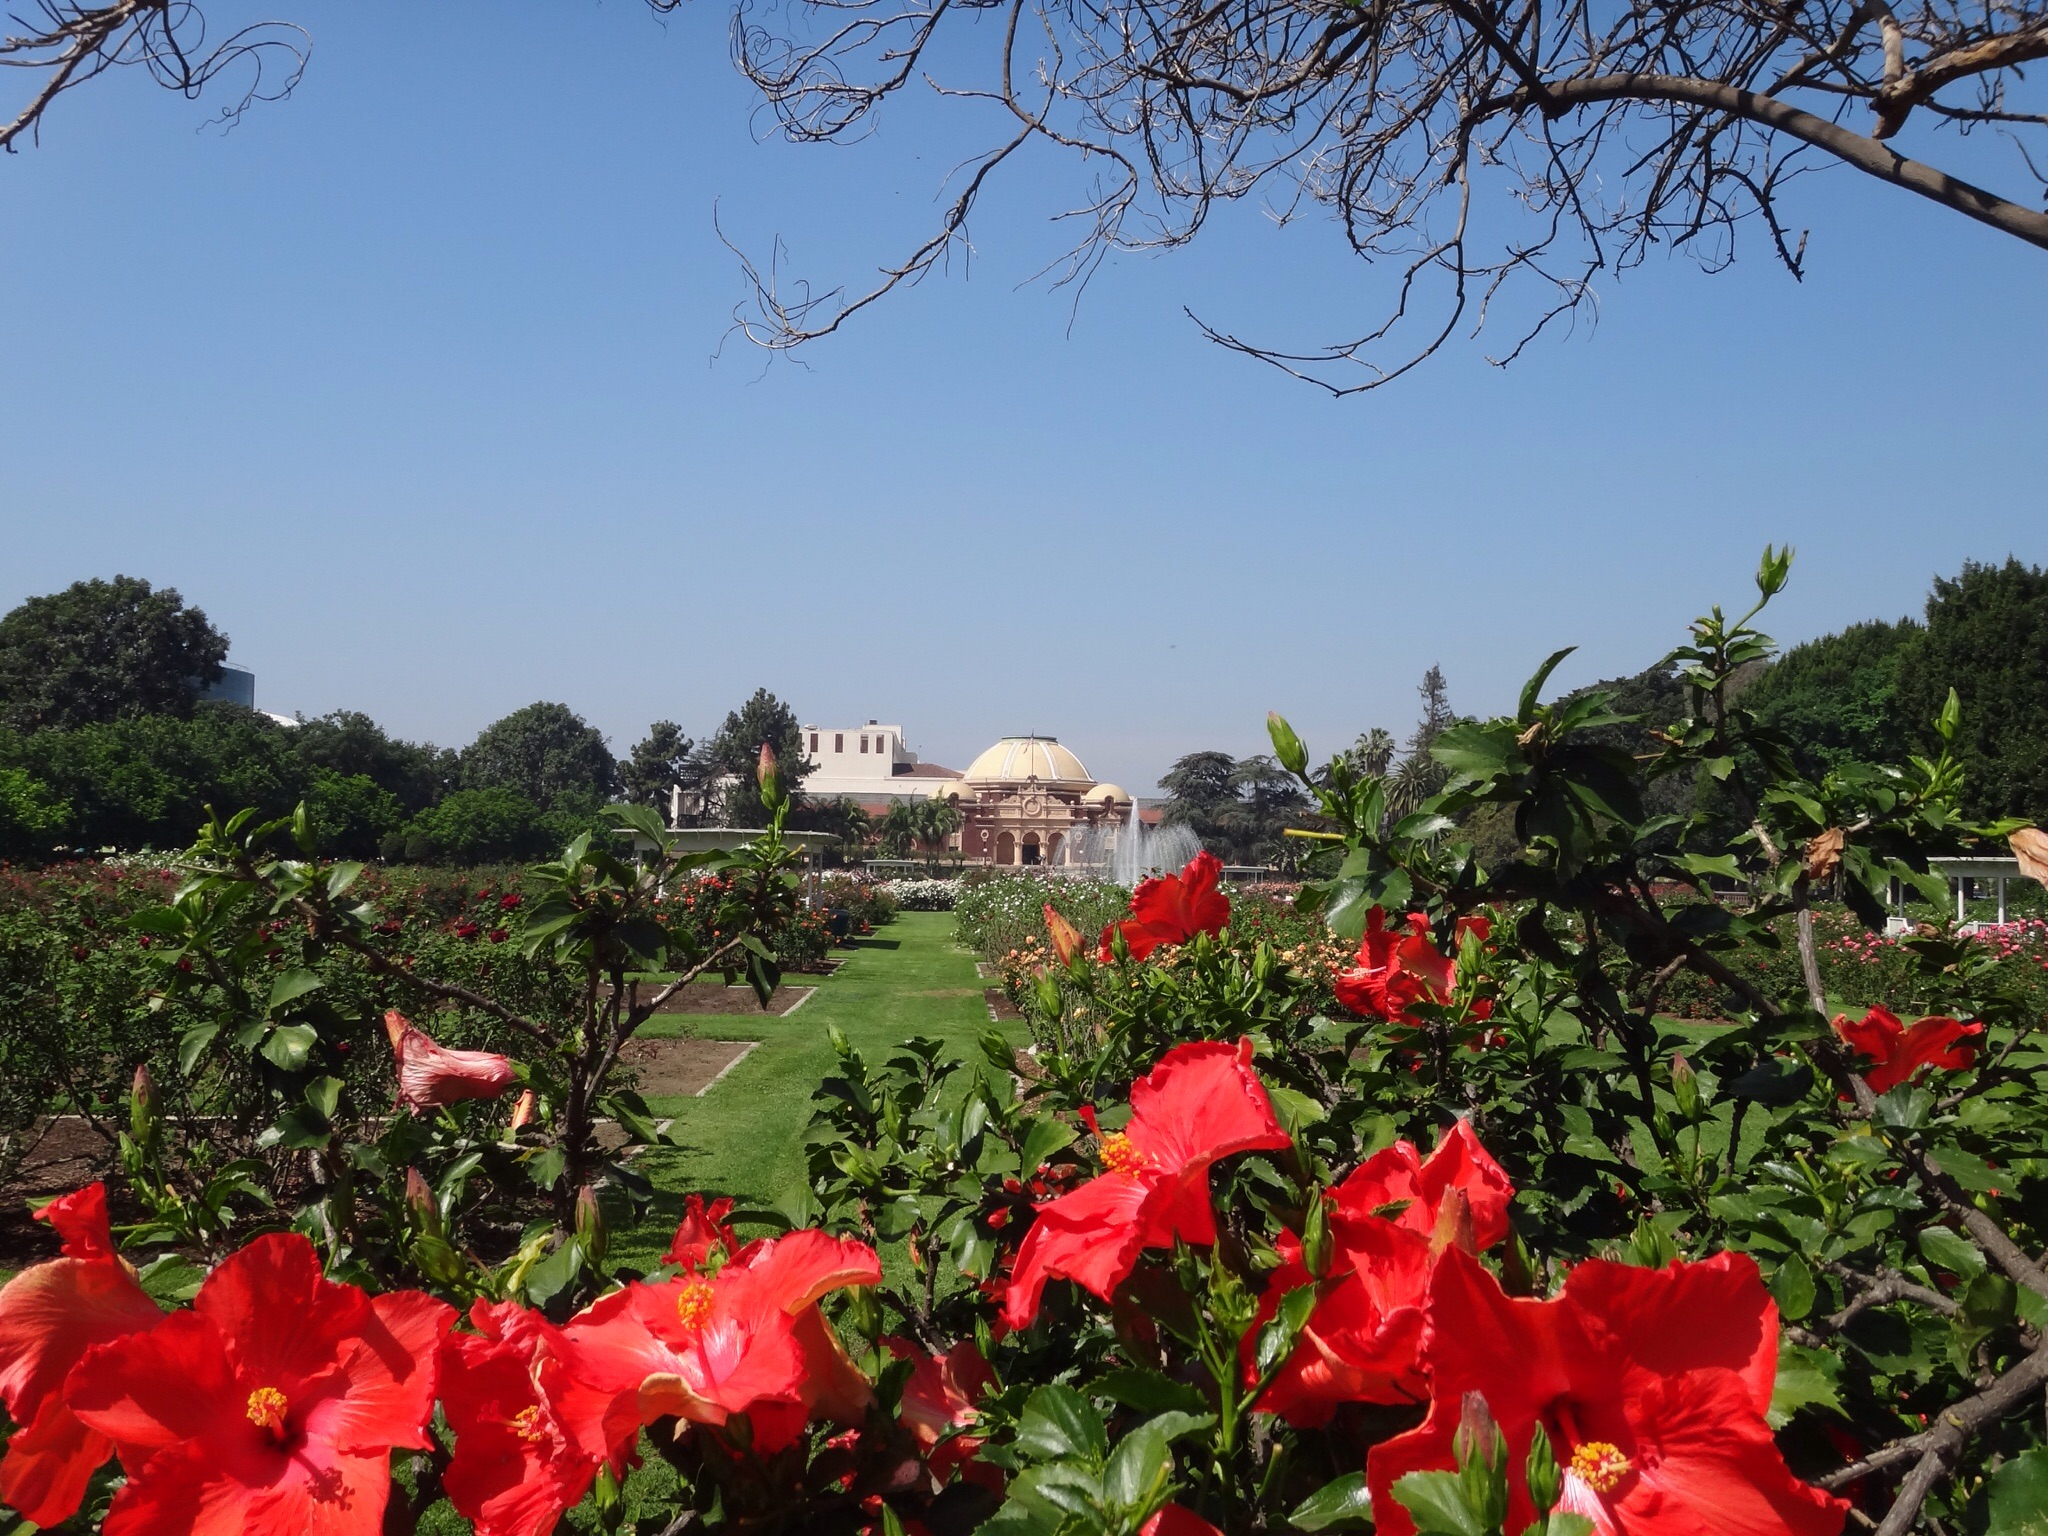 The Rose Garden on the University of Southern California Campus